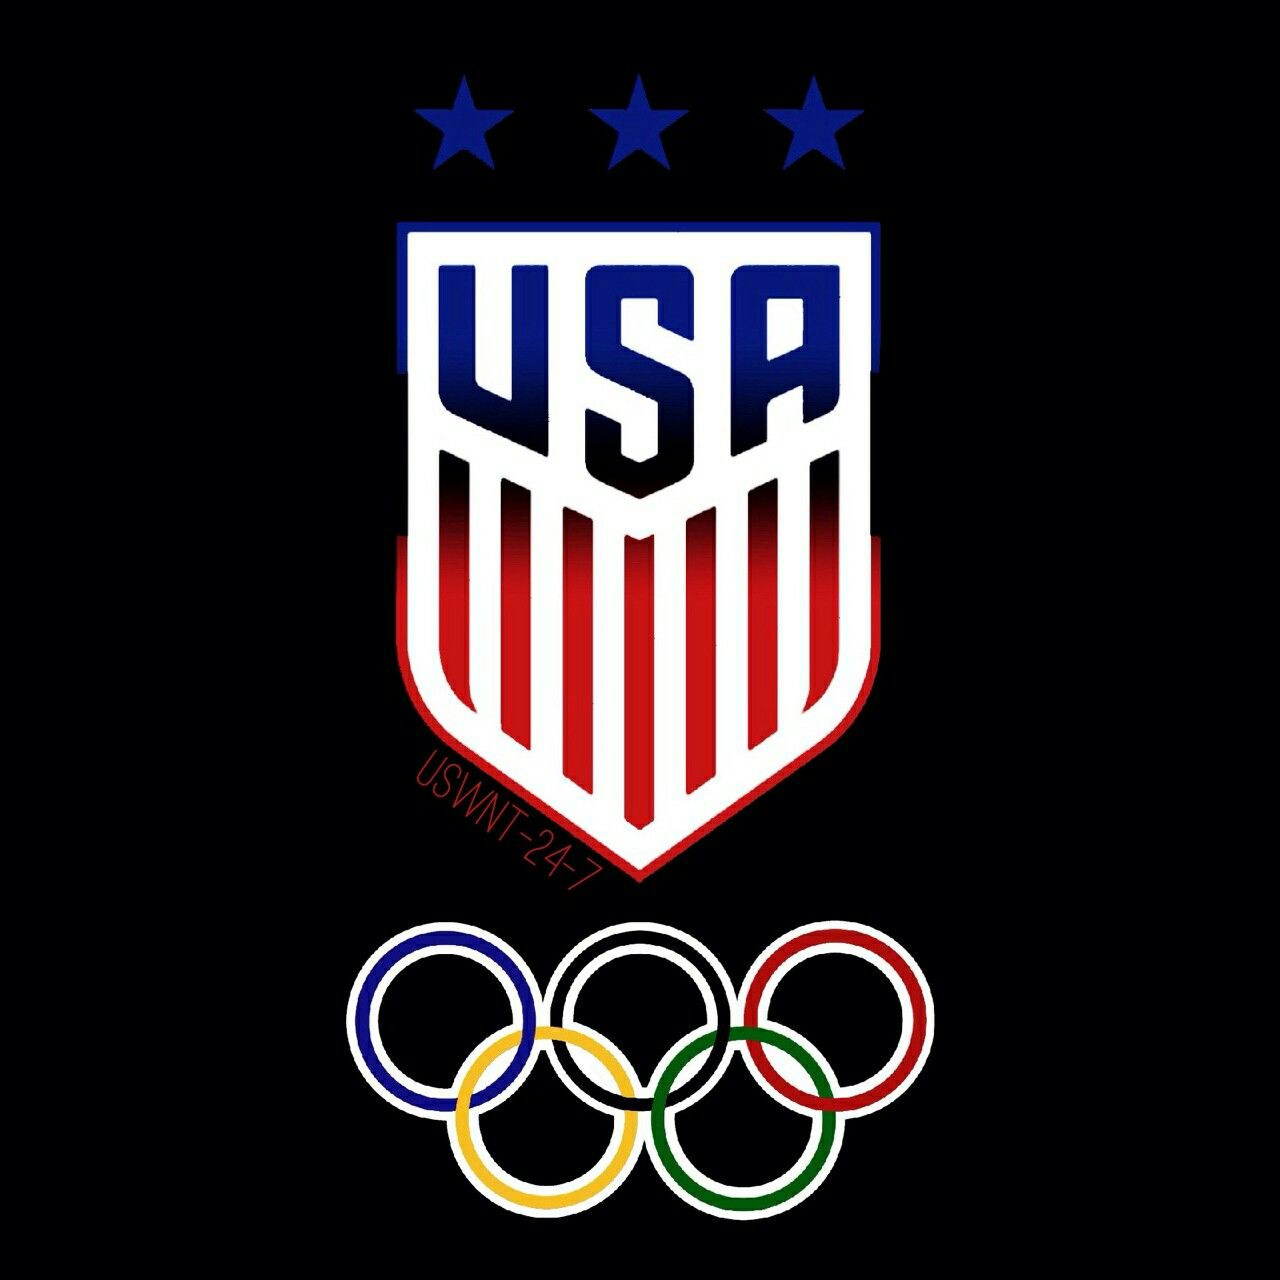 Pin By Amber Ramsey On Sports Usa Soccer Women Usa Soccer Soccer Logo